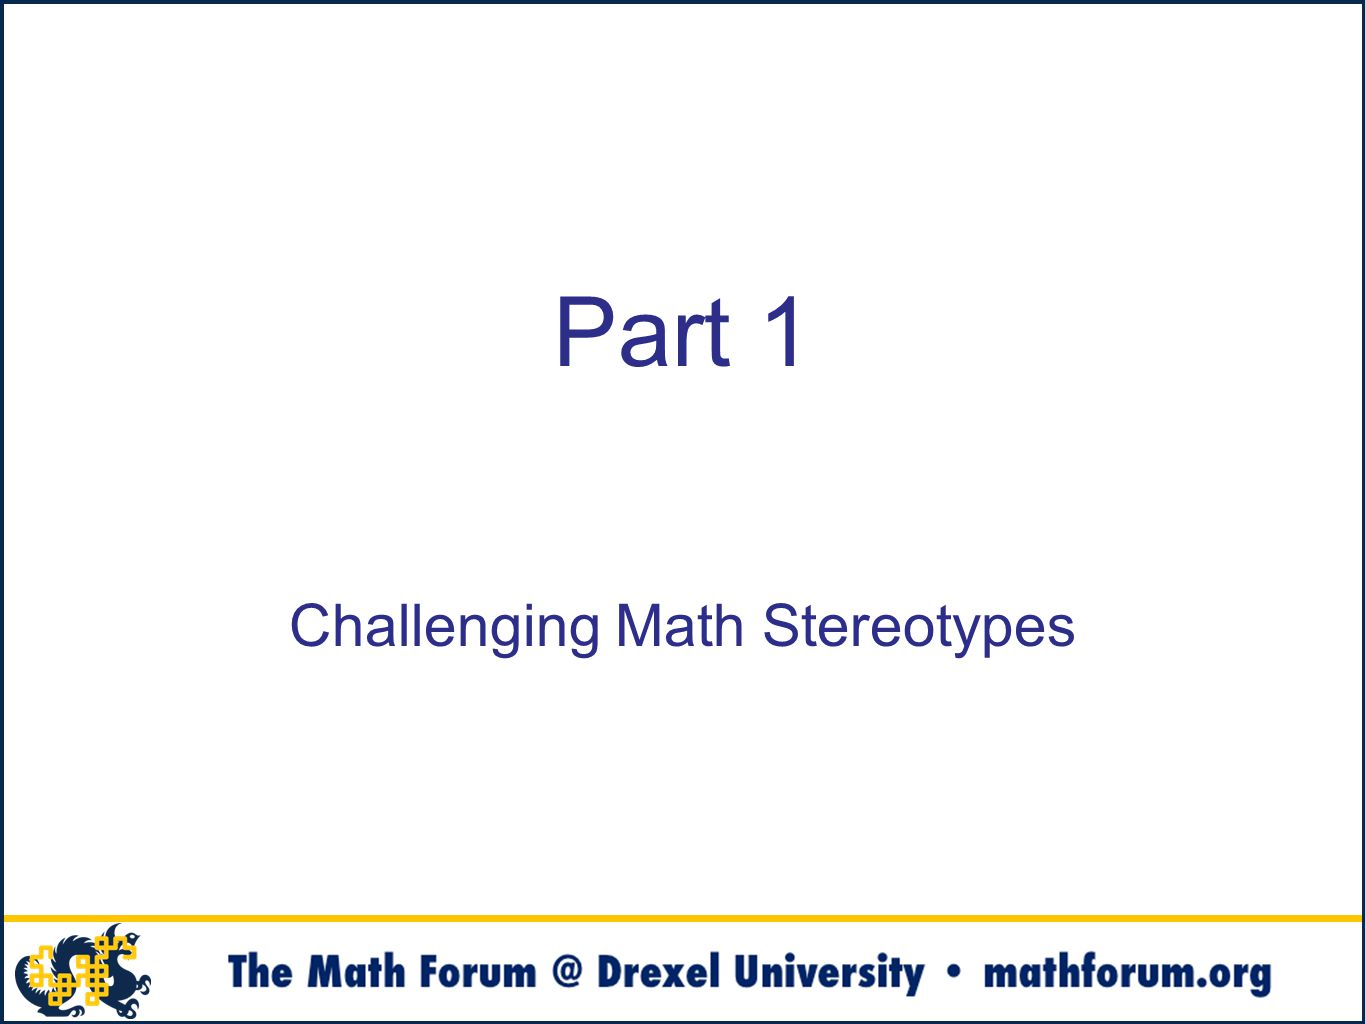 Part 1 Challenging Math Stereotypes